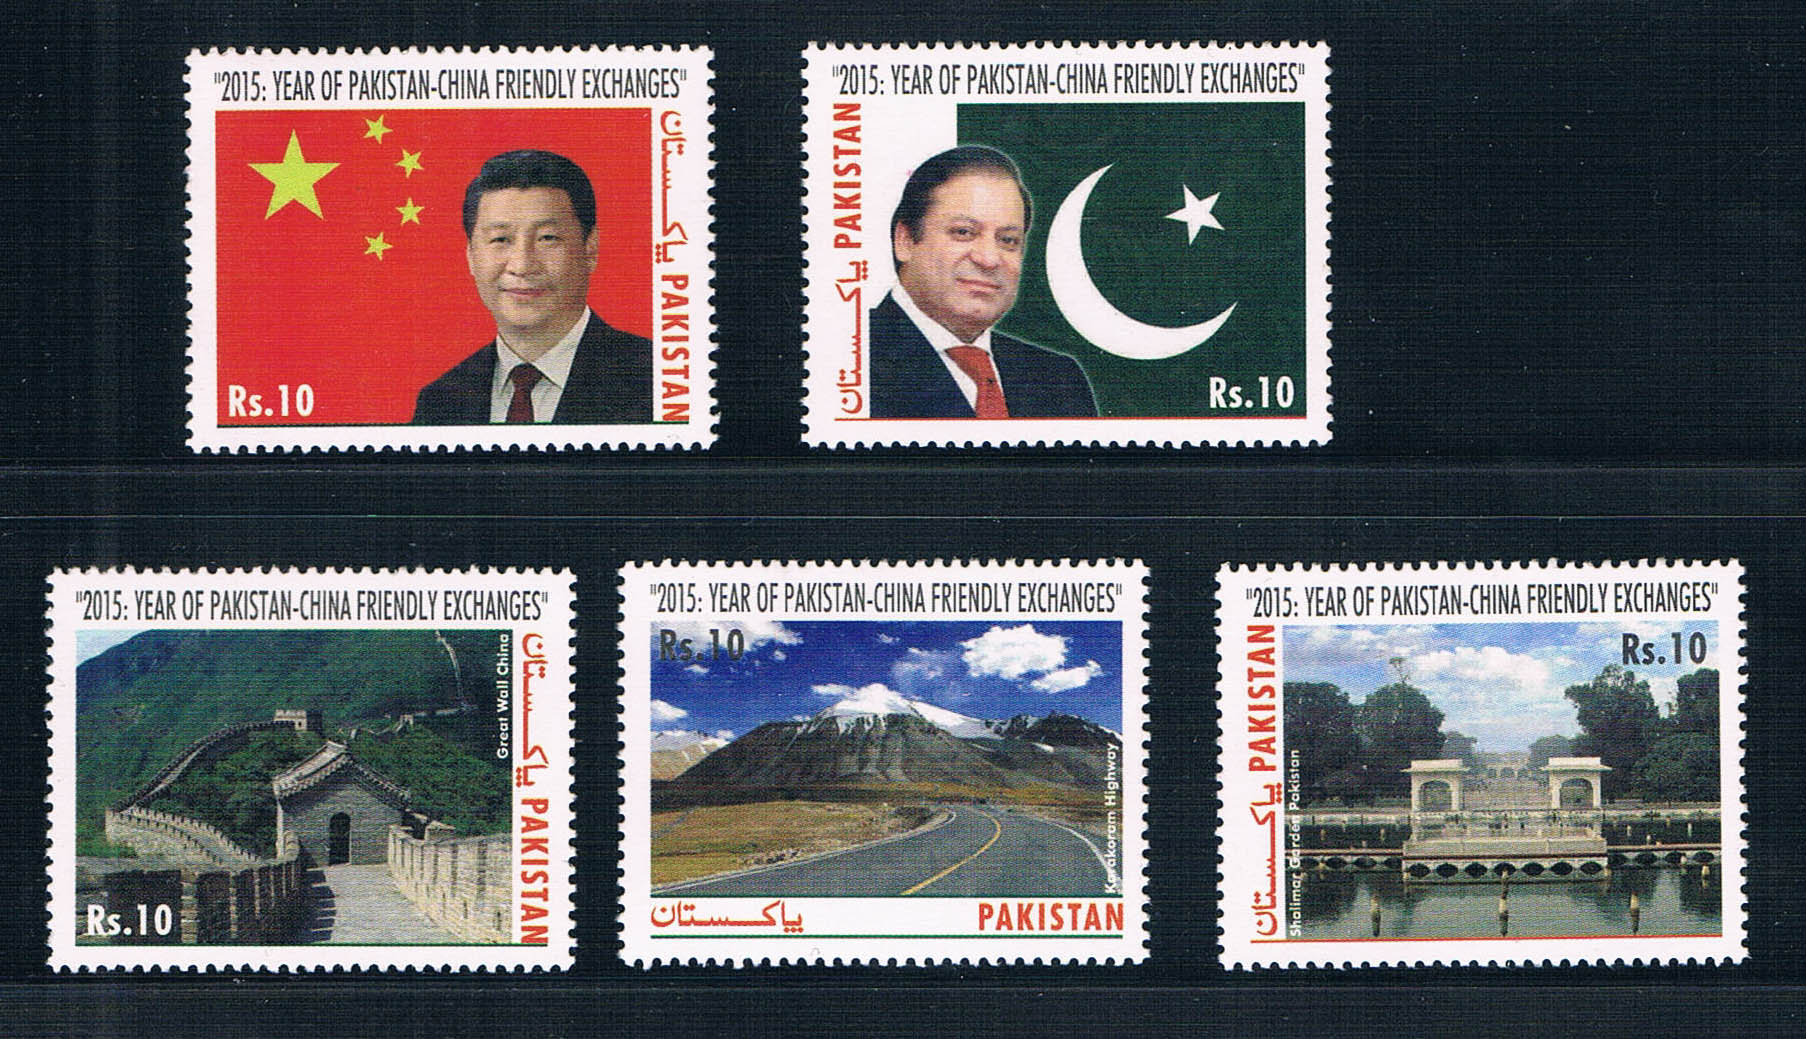 CM0605 Pakistan 2015 years of friendly exchanges and China flag the Great Wall 5 new non ticket 1018 mycofloral study of pinus forest of samahni azad kashmir pakistan